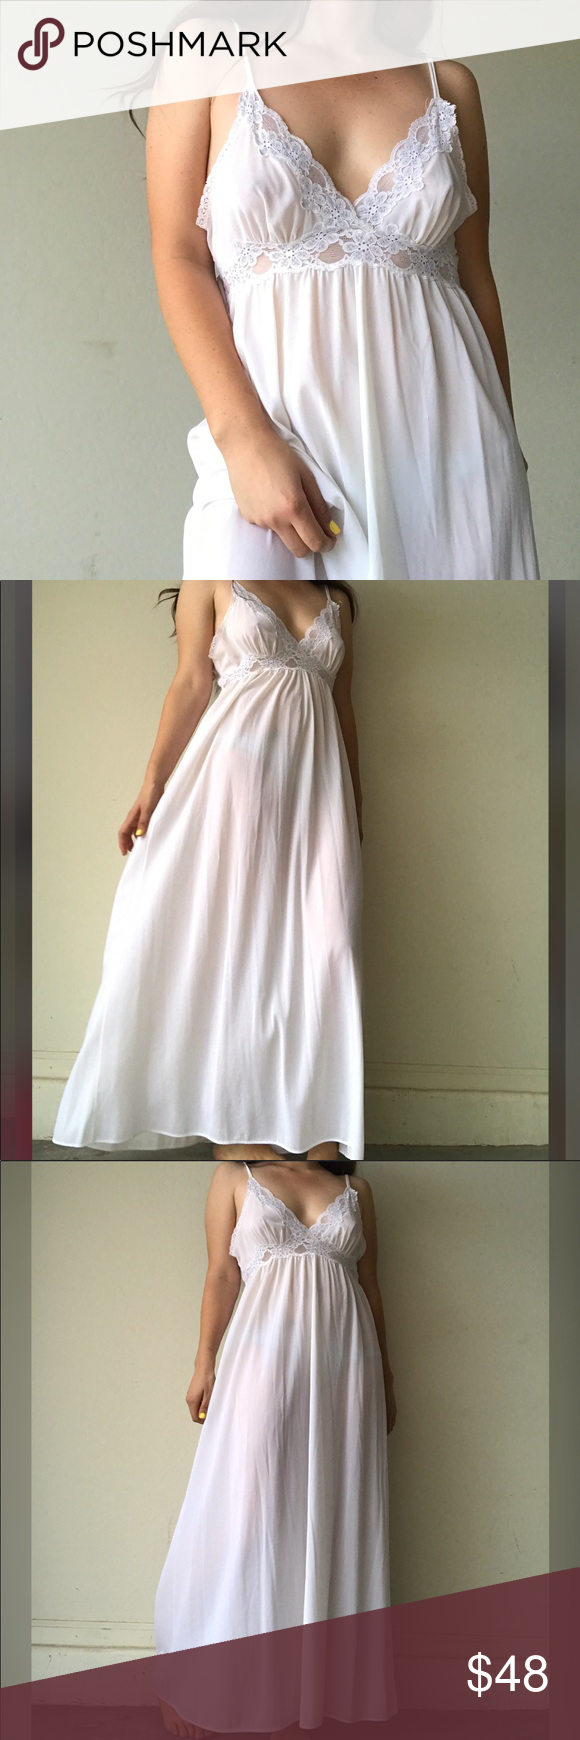 "Vintage white long Nightie Beautiful and dainty Nightie with lace details. In great condition. More details coming soon. Shown on a medium and will also fit a large. I'm 5'5"" for reference and 36 A CUP Vintage Intimates & Sleepwear Chemises & Slips"